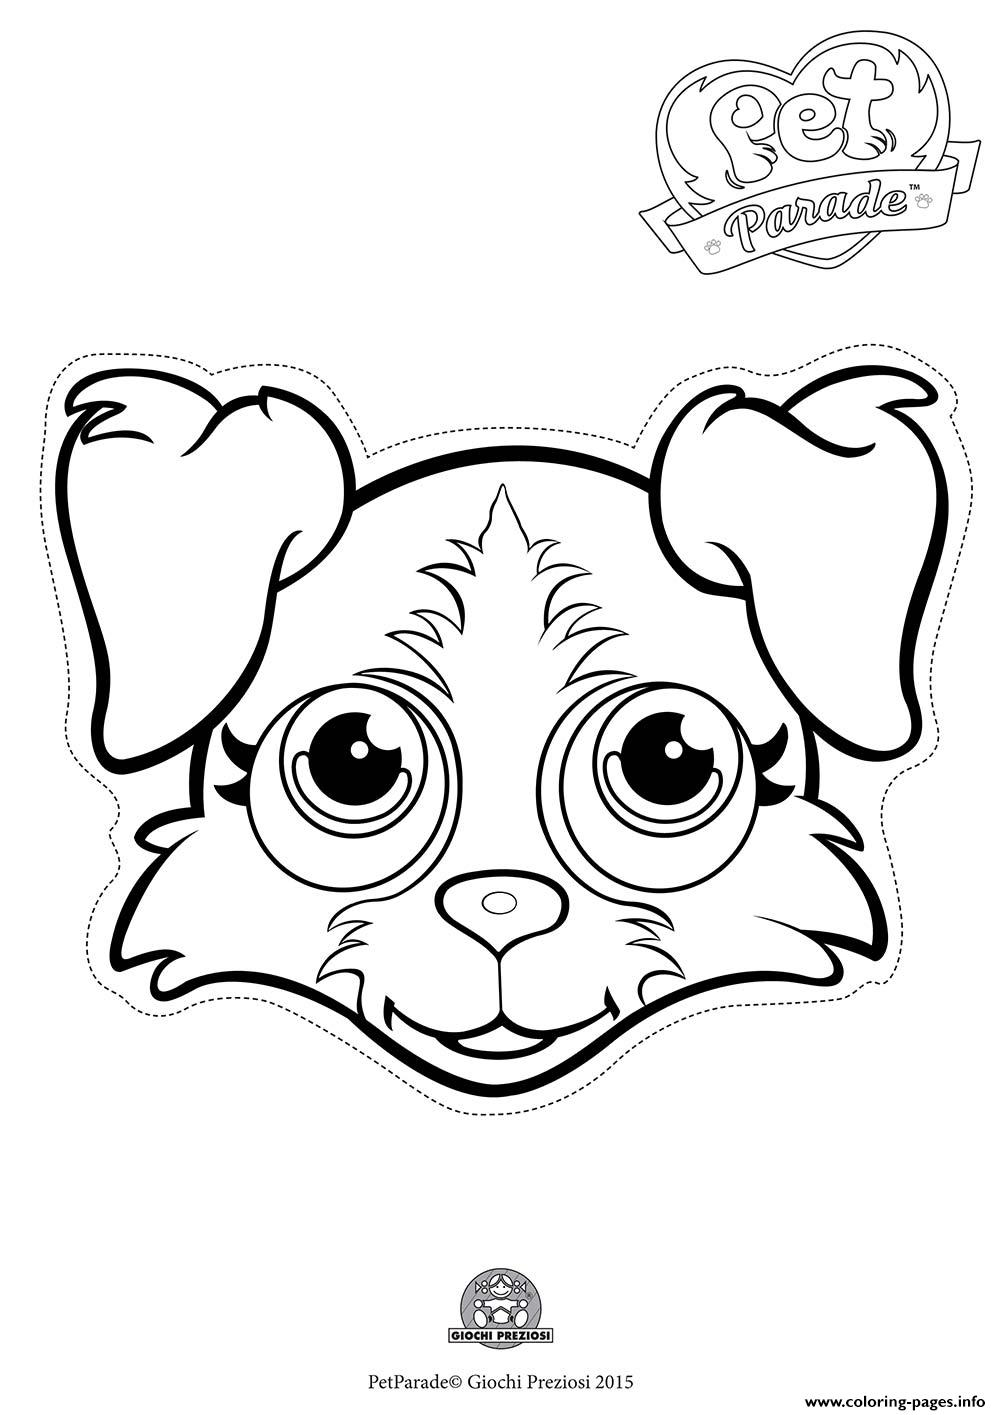 Pet Parade Cute Dog Border Collie 2 coloring pages